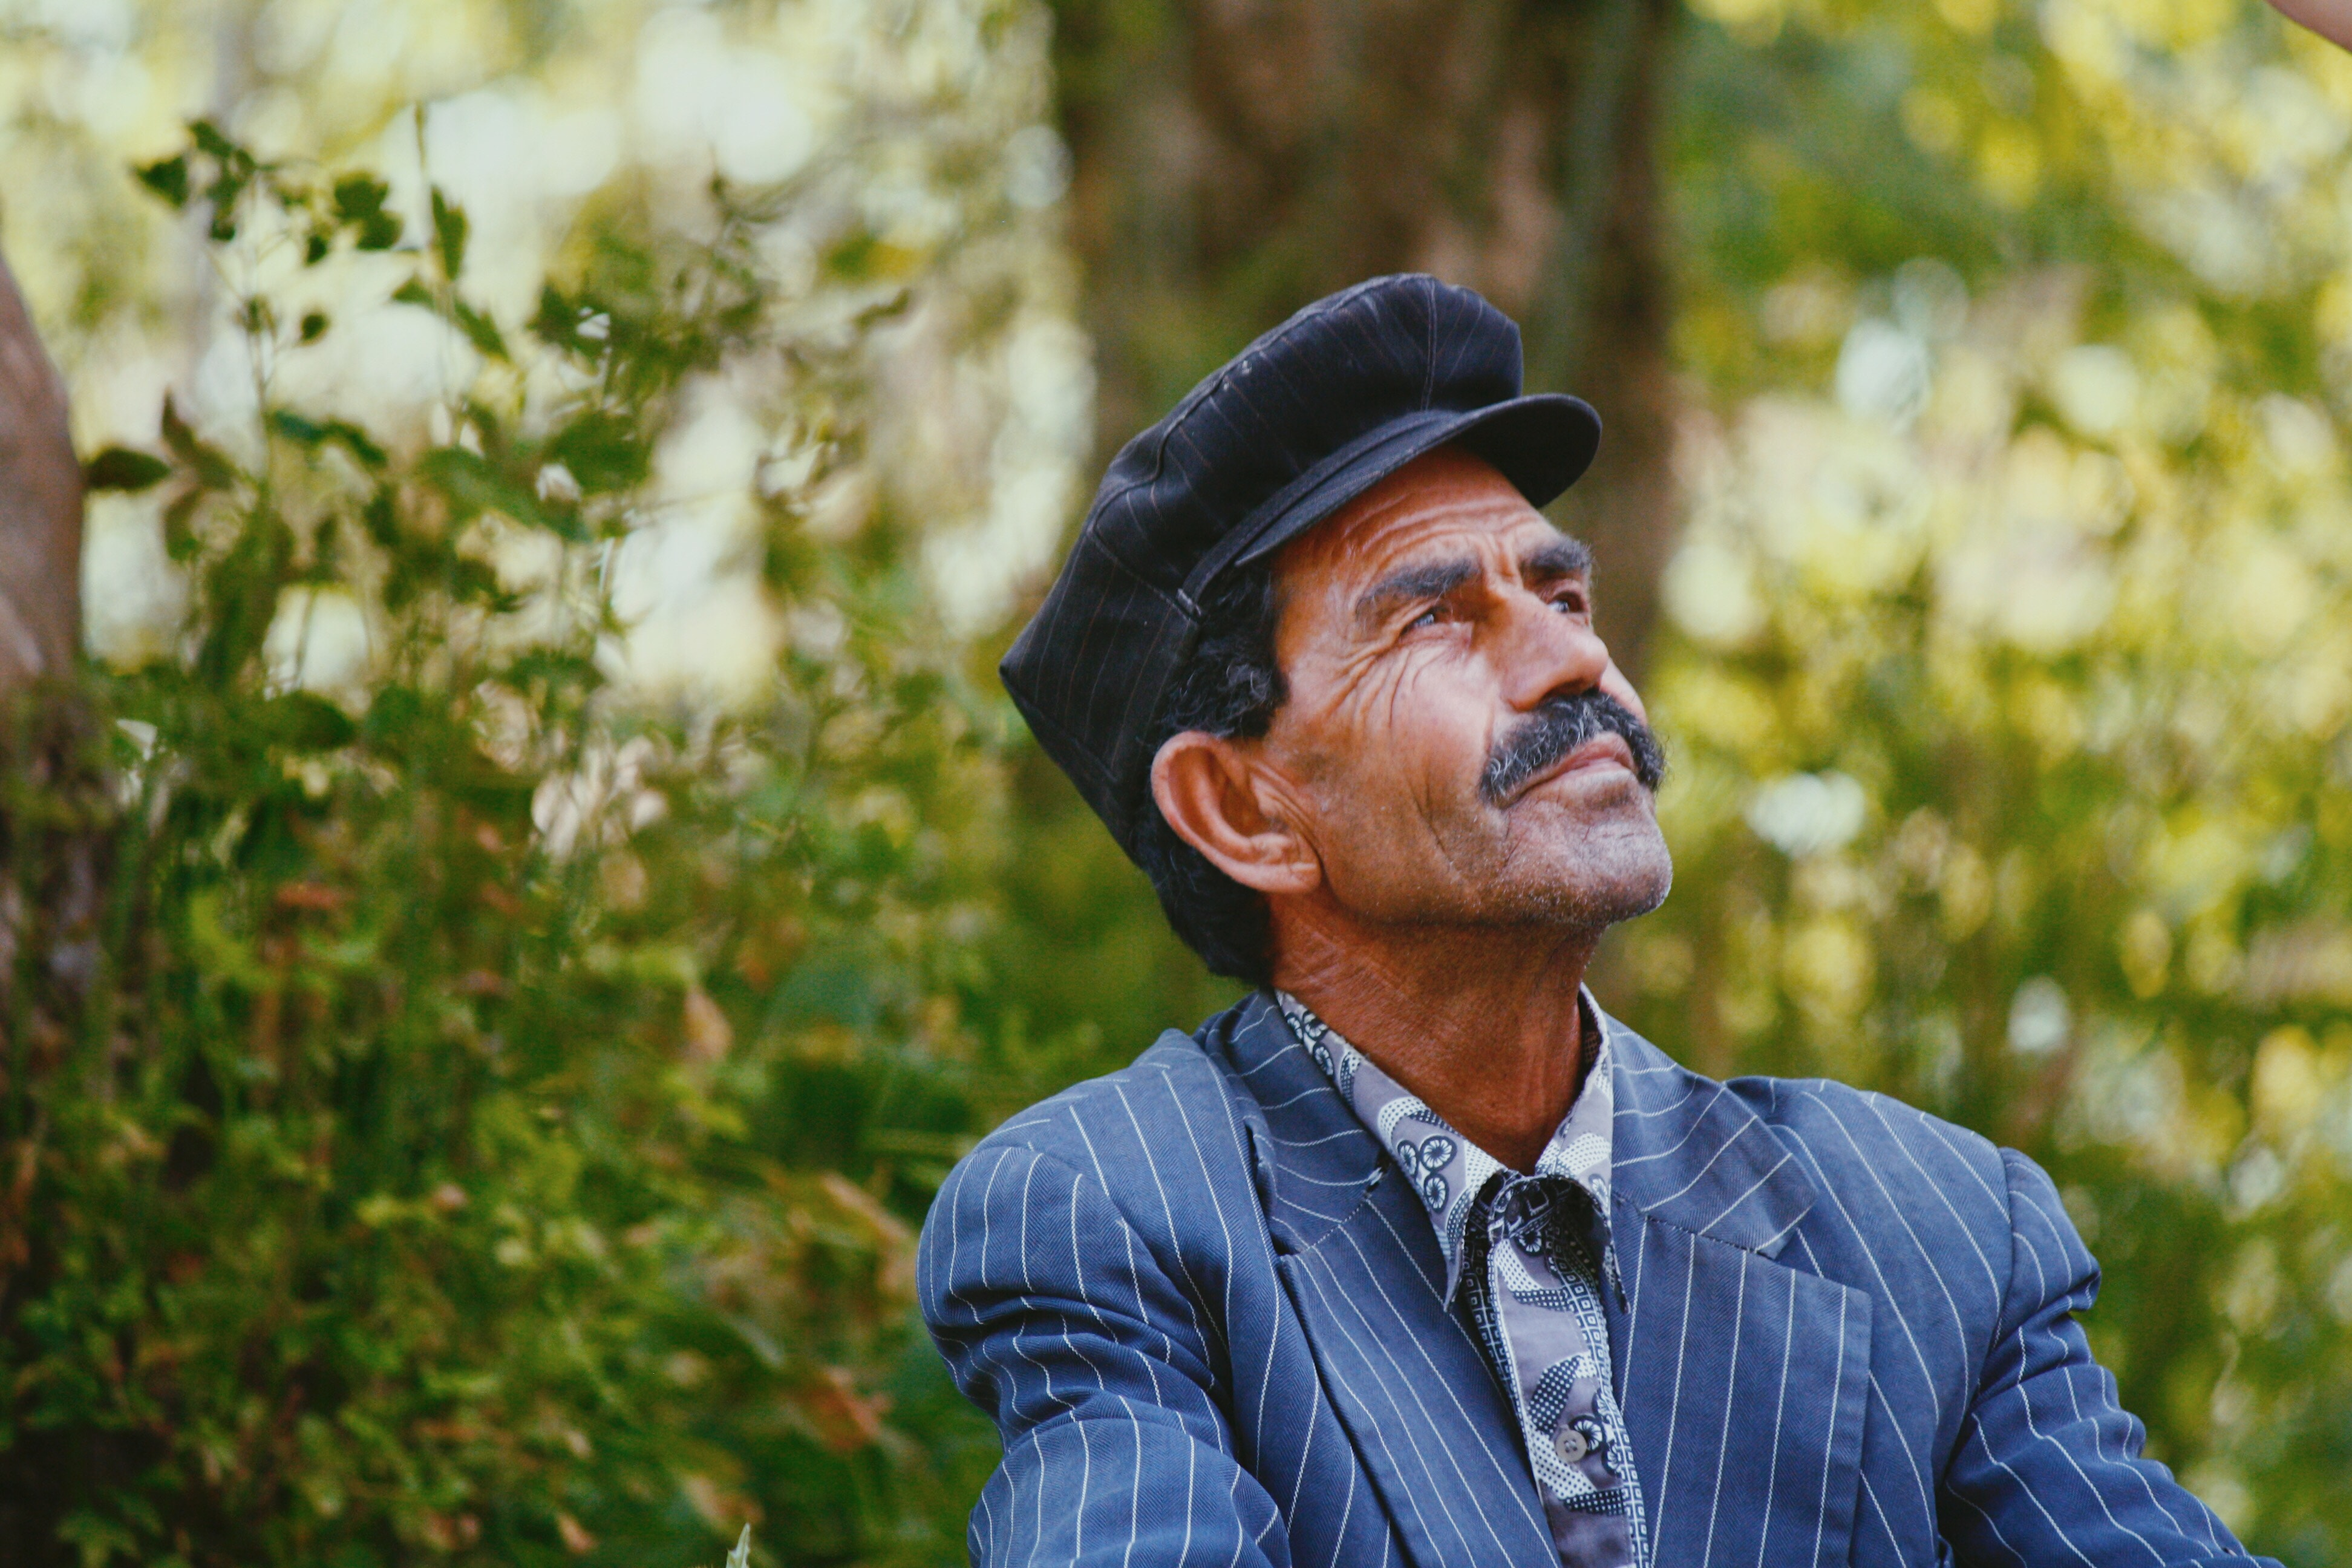 The World Health Organisation global campaign to combat ageism